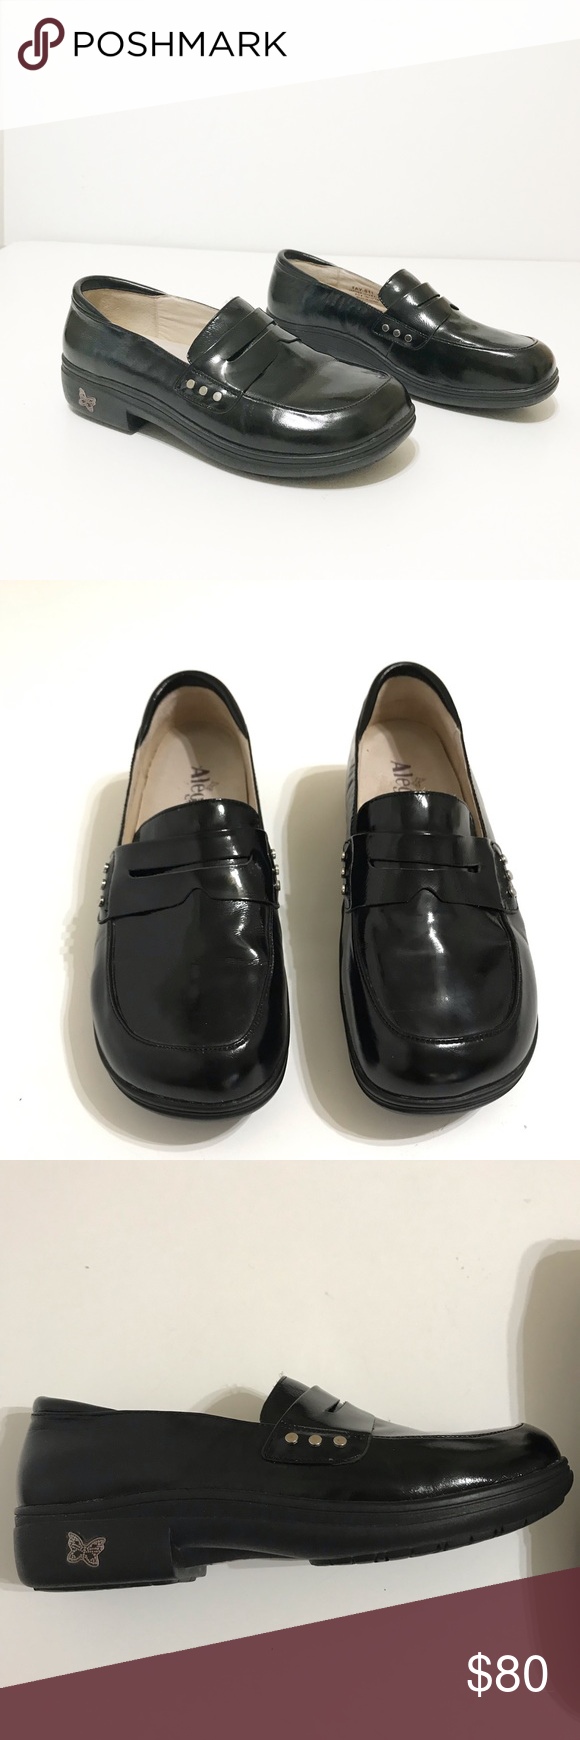 eebbacf90e6 Alegria Taylor Black Waxy Loafer Size 40 Alegria Taylor Black Waxy Loafer  Line New Condition Size